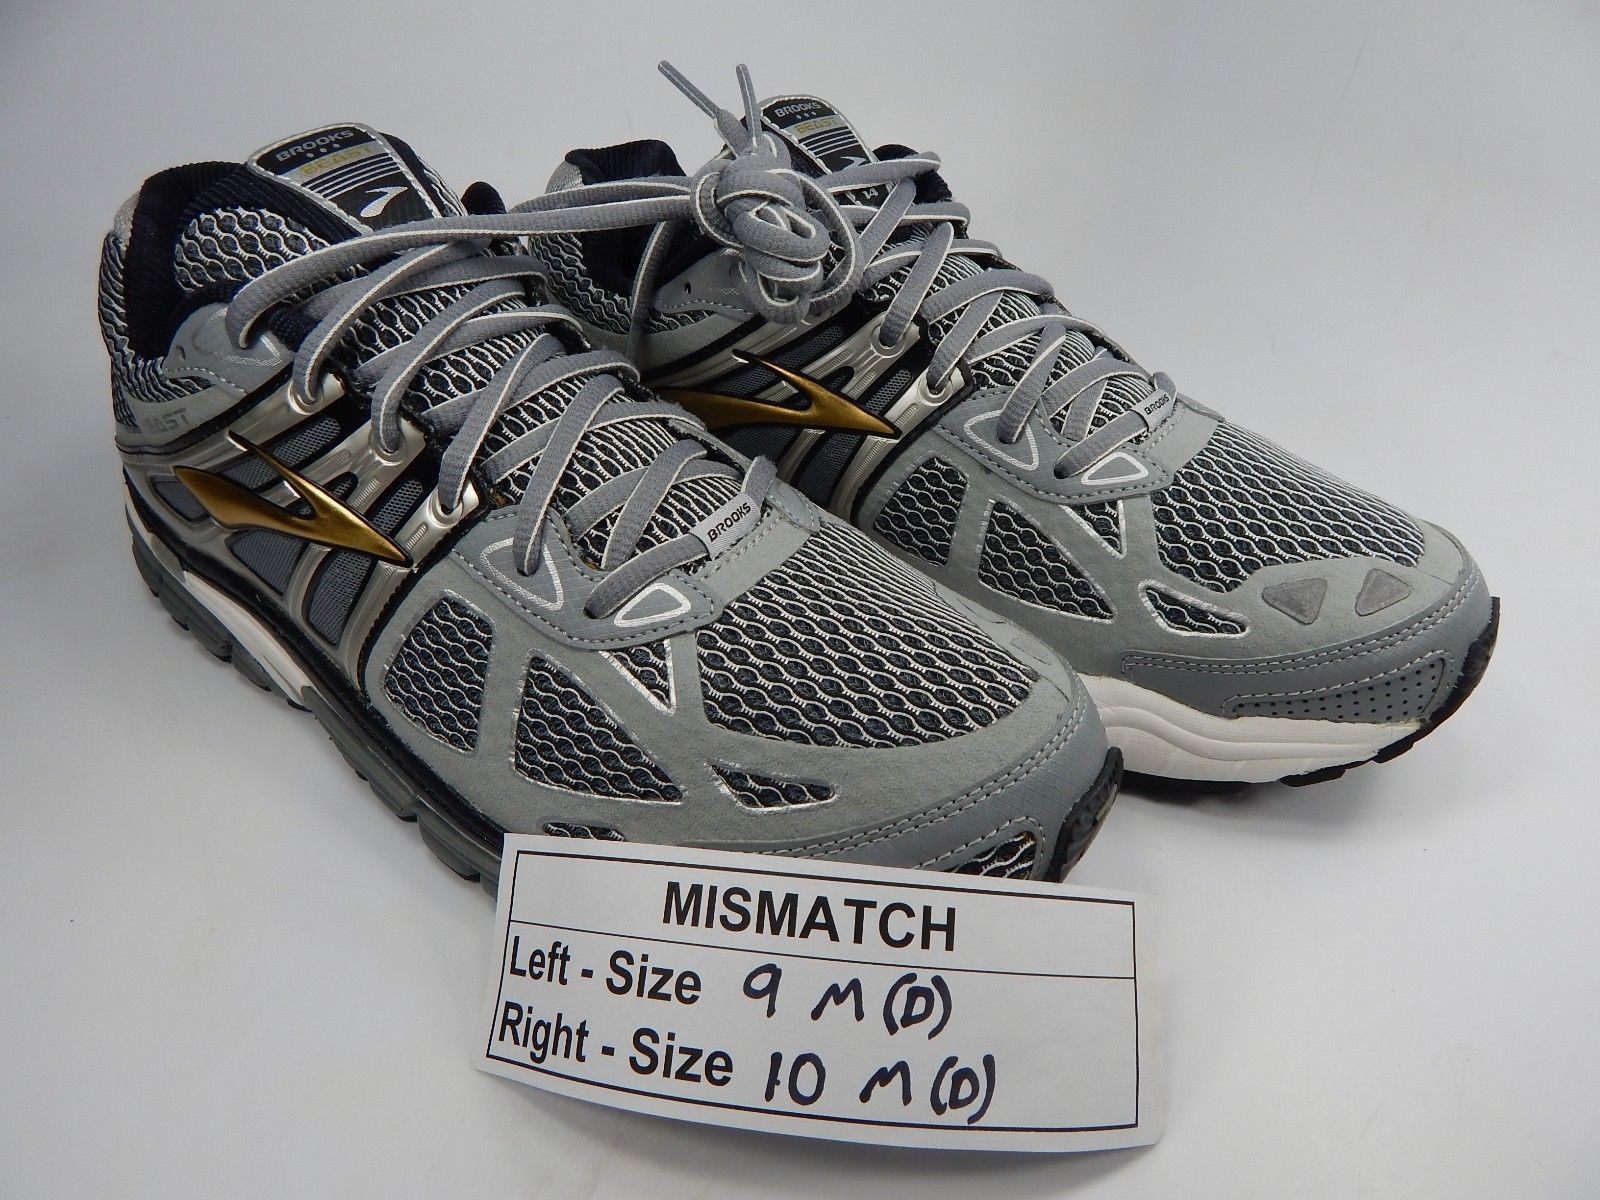 MISMATCH Brooks Beast 14 Men's Shoes Size 9 M (D) Left & 10 M (D) Right